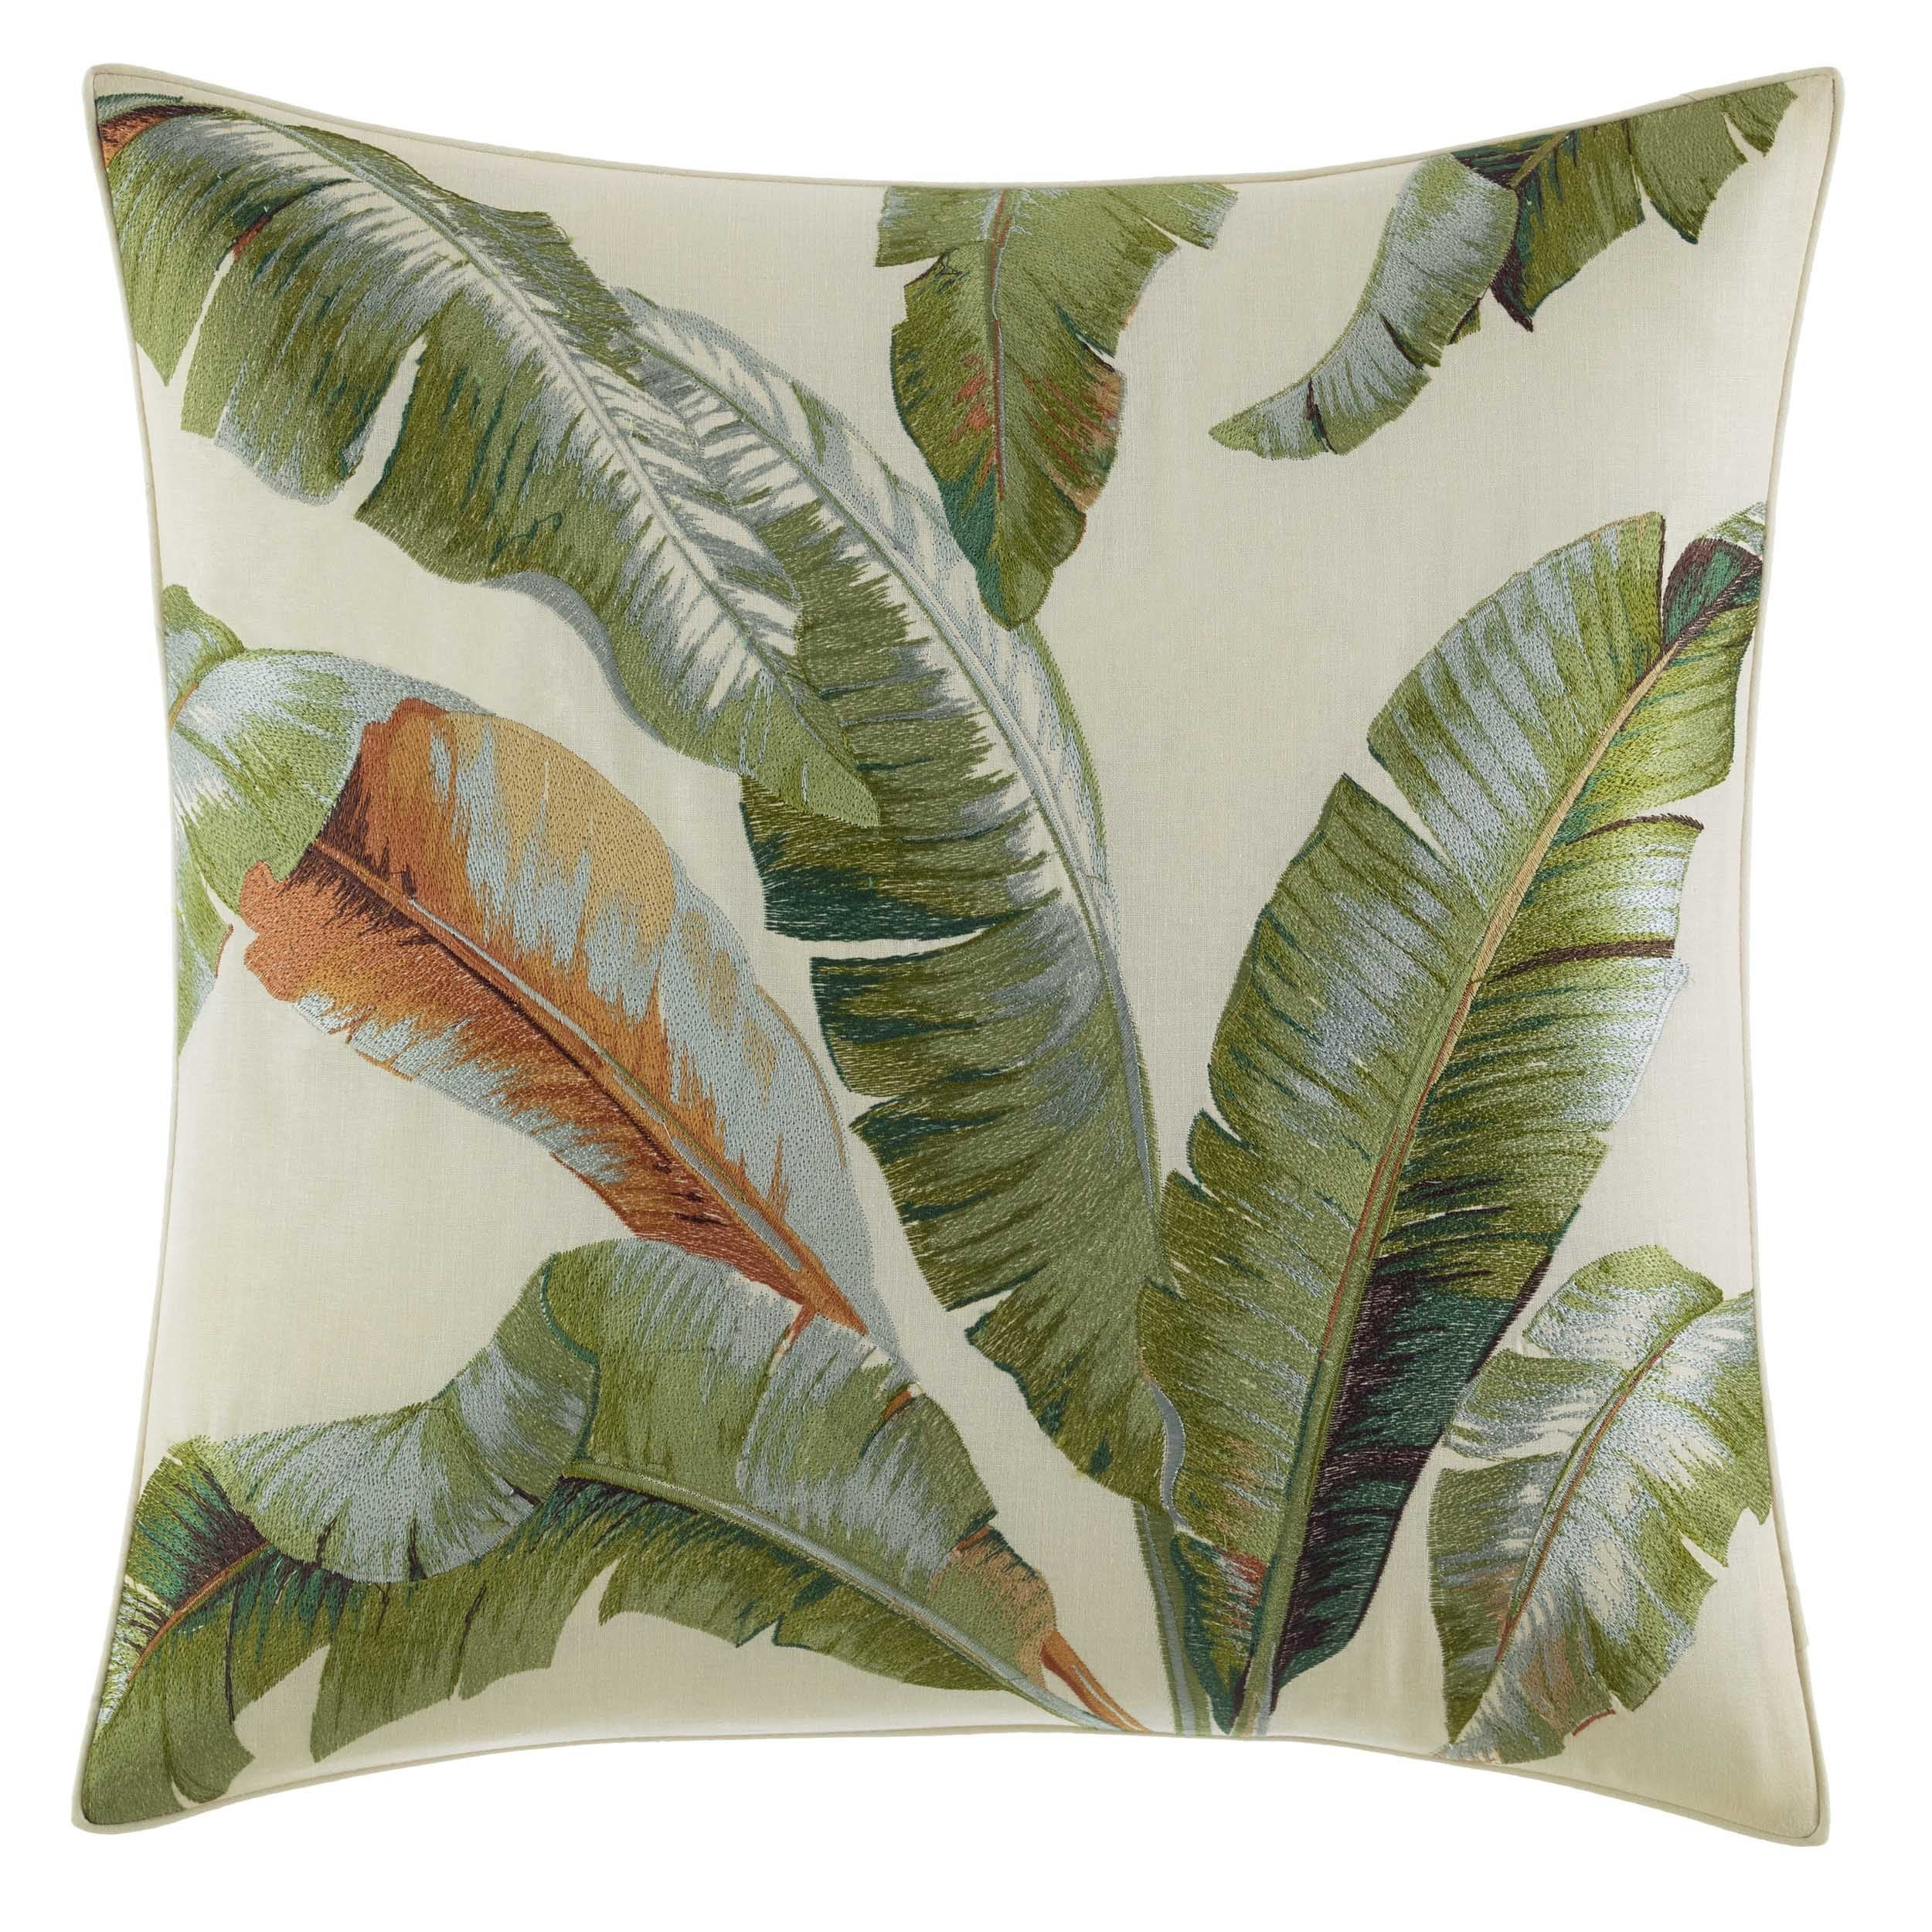 Remarkable Buy Tropical Throw Pillows Online At Overstock Our Best Machost Co Dining Chair Design Ideas Machostcouk